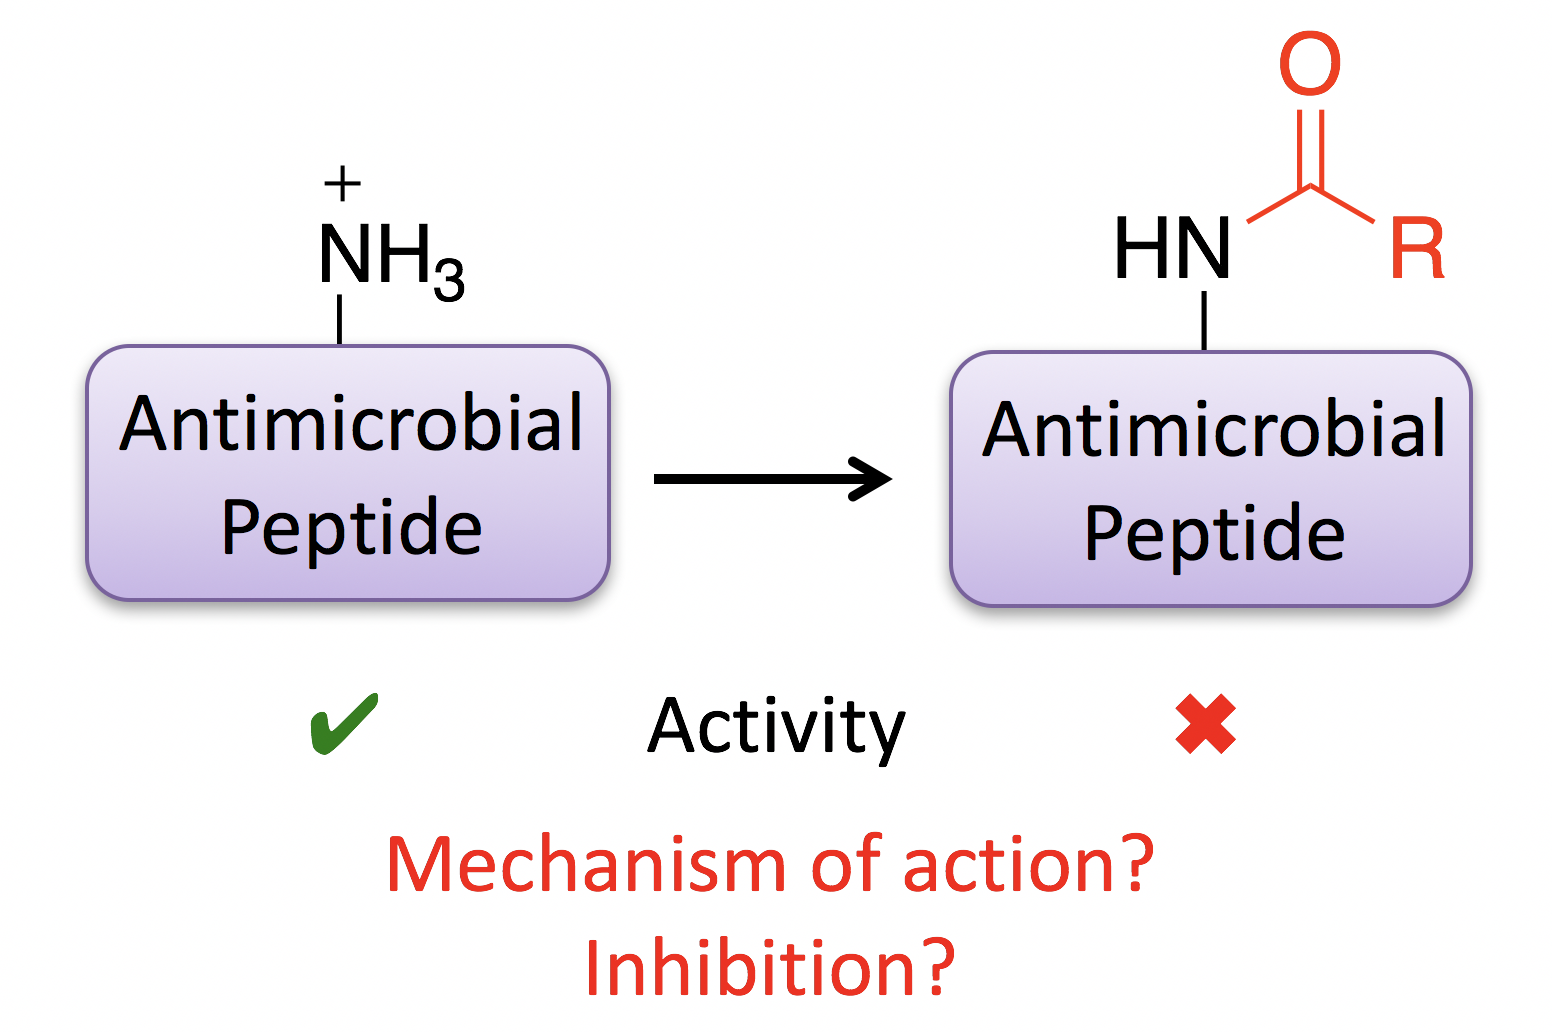 Inhibition of antimicrobial peptides by acylation